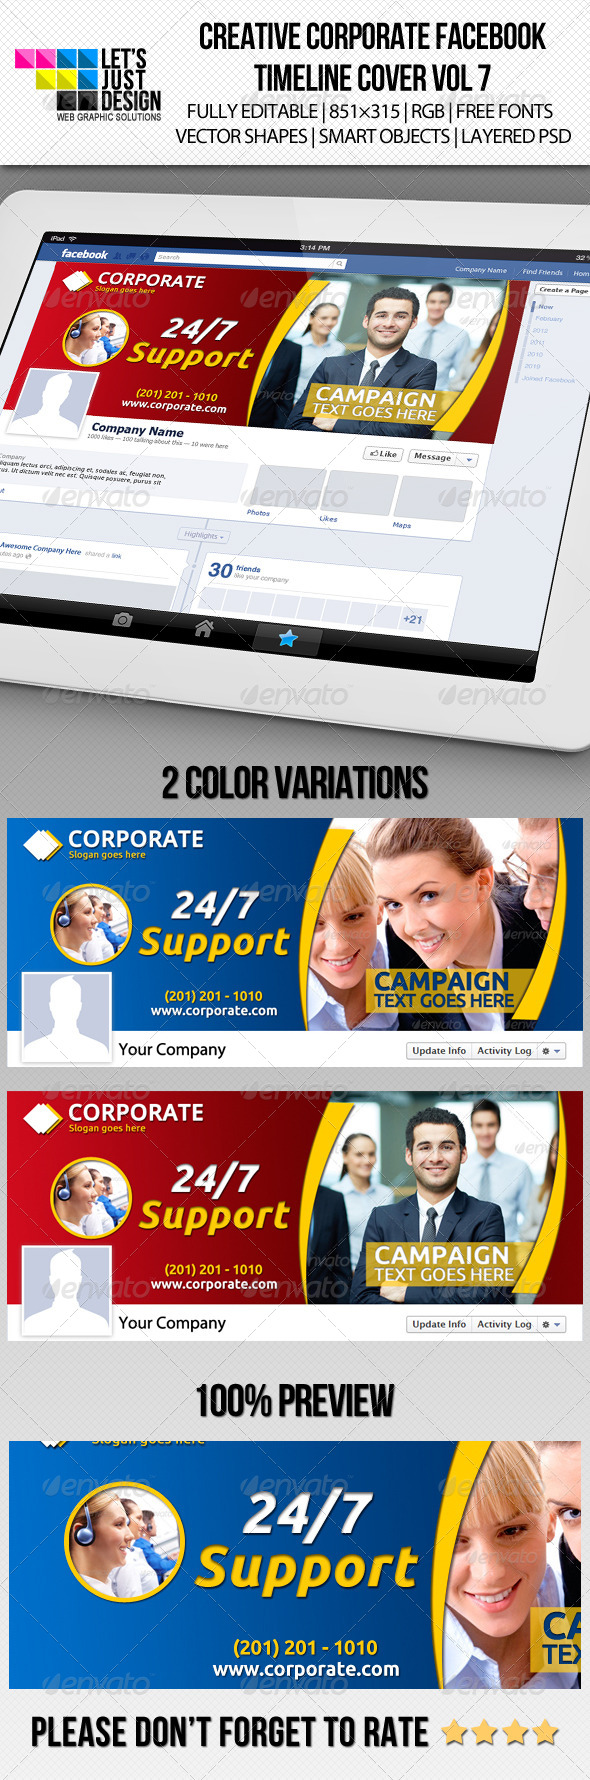 Creative Corporate Facebook Timeline Cover Vol 7 - Facebook Timeline Covers Social Media